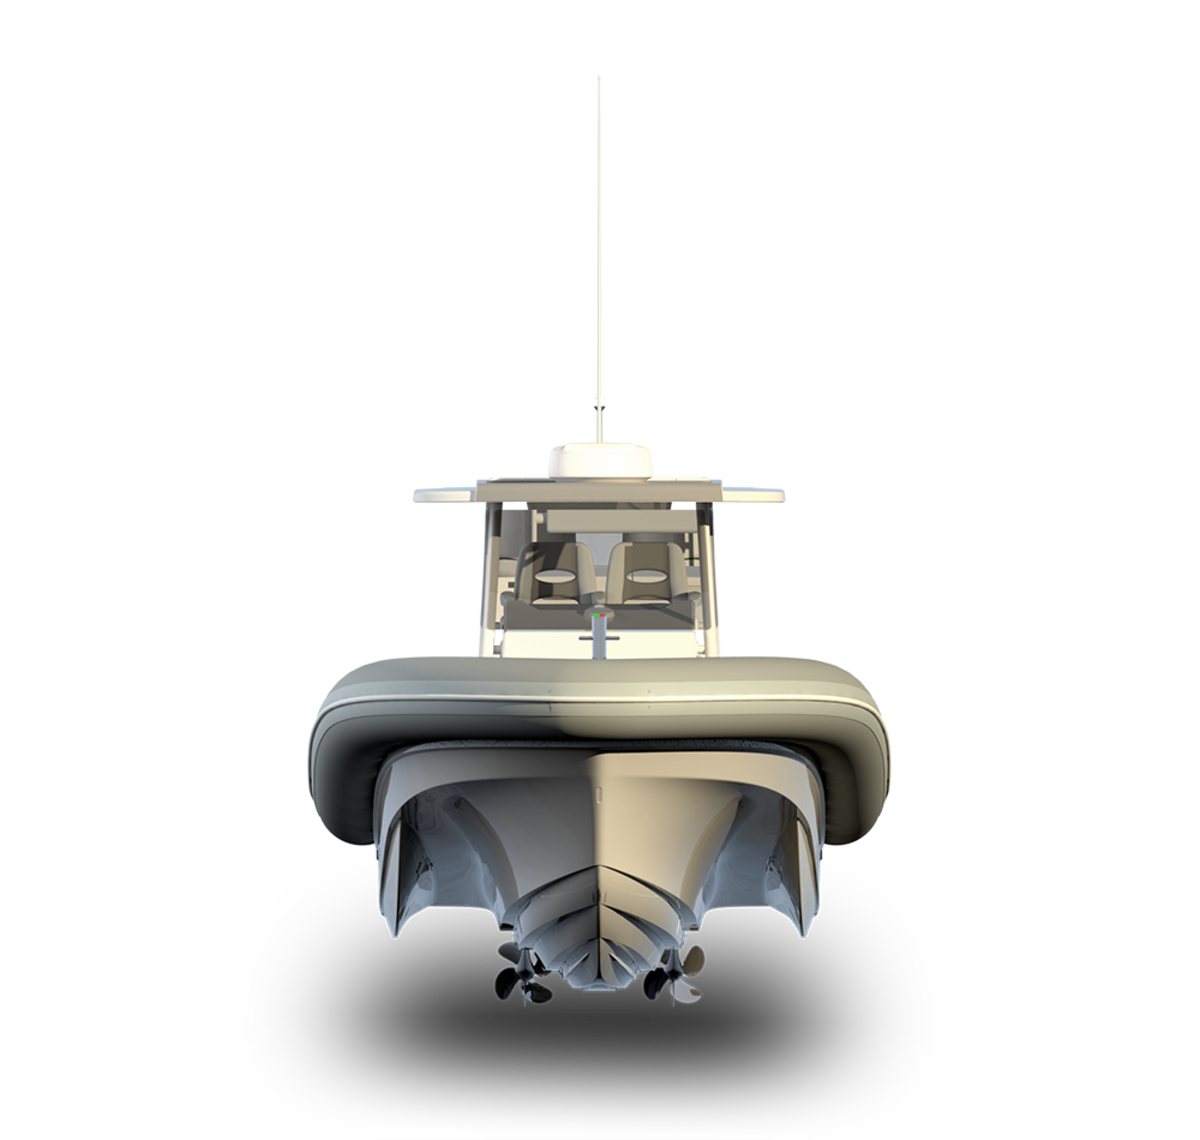 The boat combines a stepped hull with outer sponsons that enhance stability.